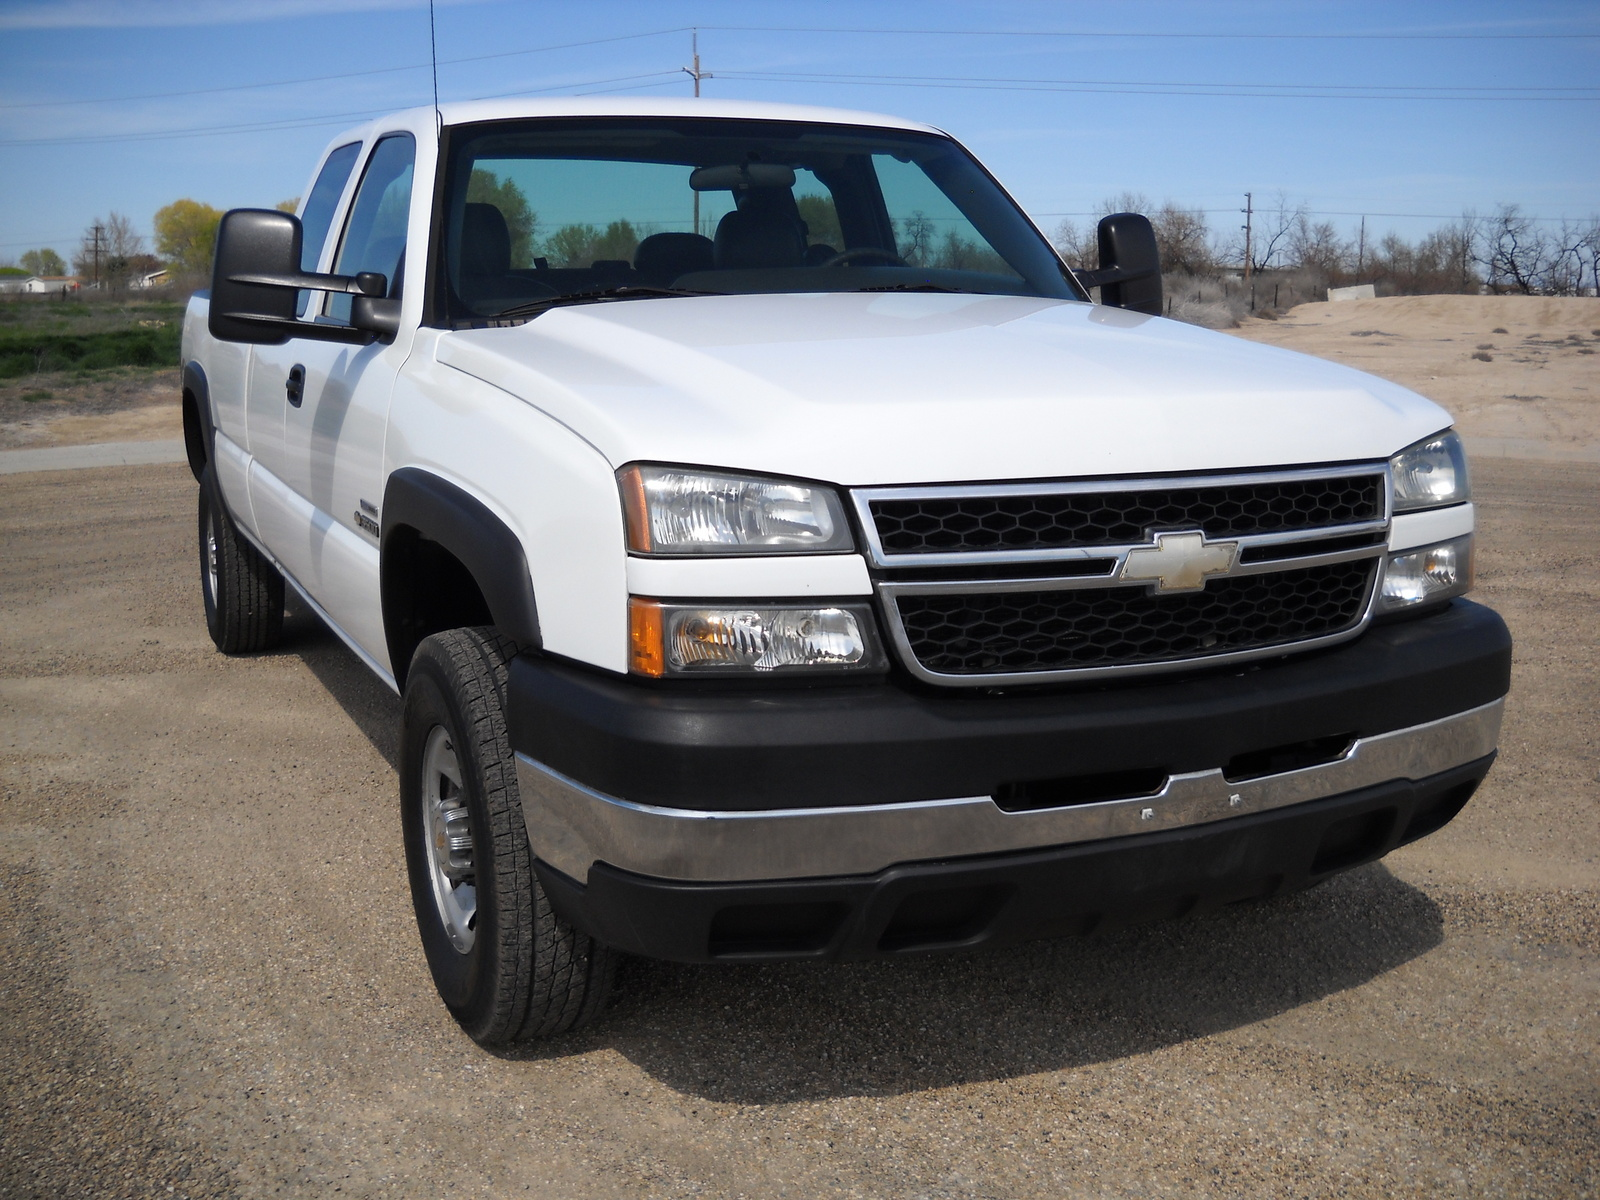 chevrolet kalos with 2005 Chevrolet Silverado 3500 Overview C786 on Watch also Efie Digital Diagramas Electronicos likewise 319 furthermore 2011 Chevrolet Hhr Pictures C22197 pi36418647 additionally Chevrolet Aveo.